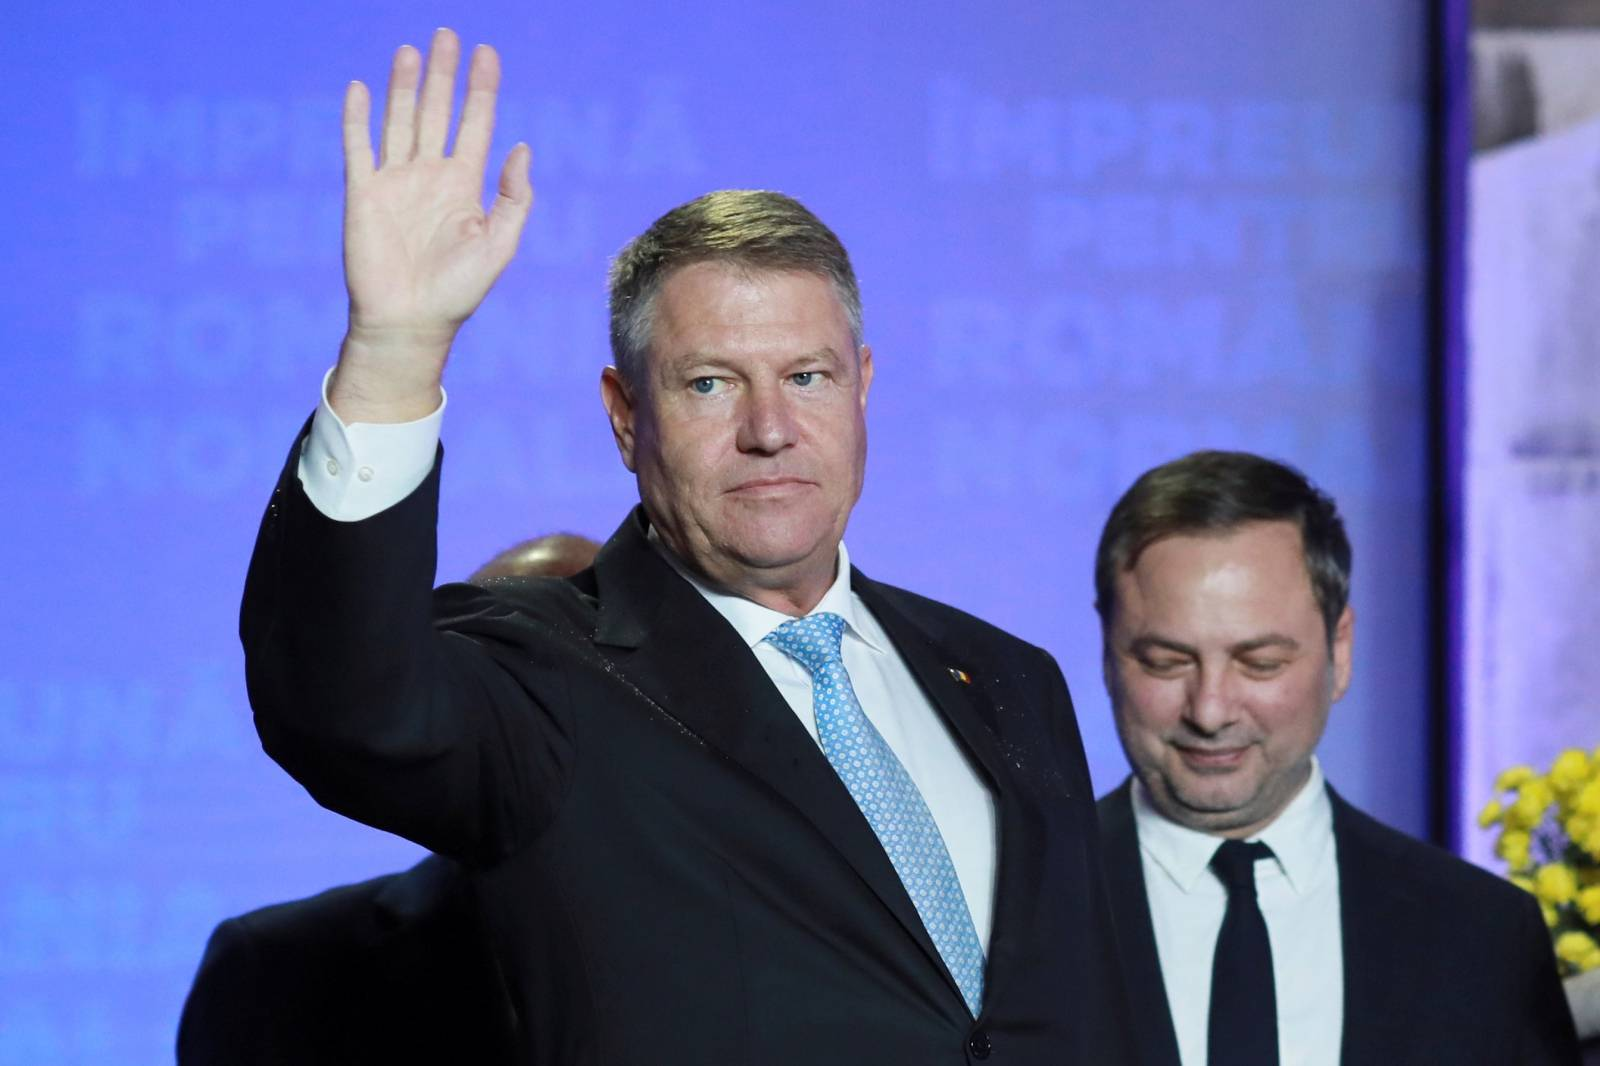 Incumbent candidate Klaus Iohannis waves during a news conference that marked the end of the first round of the presidential election, in Bucharest